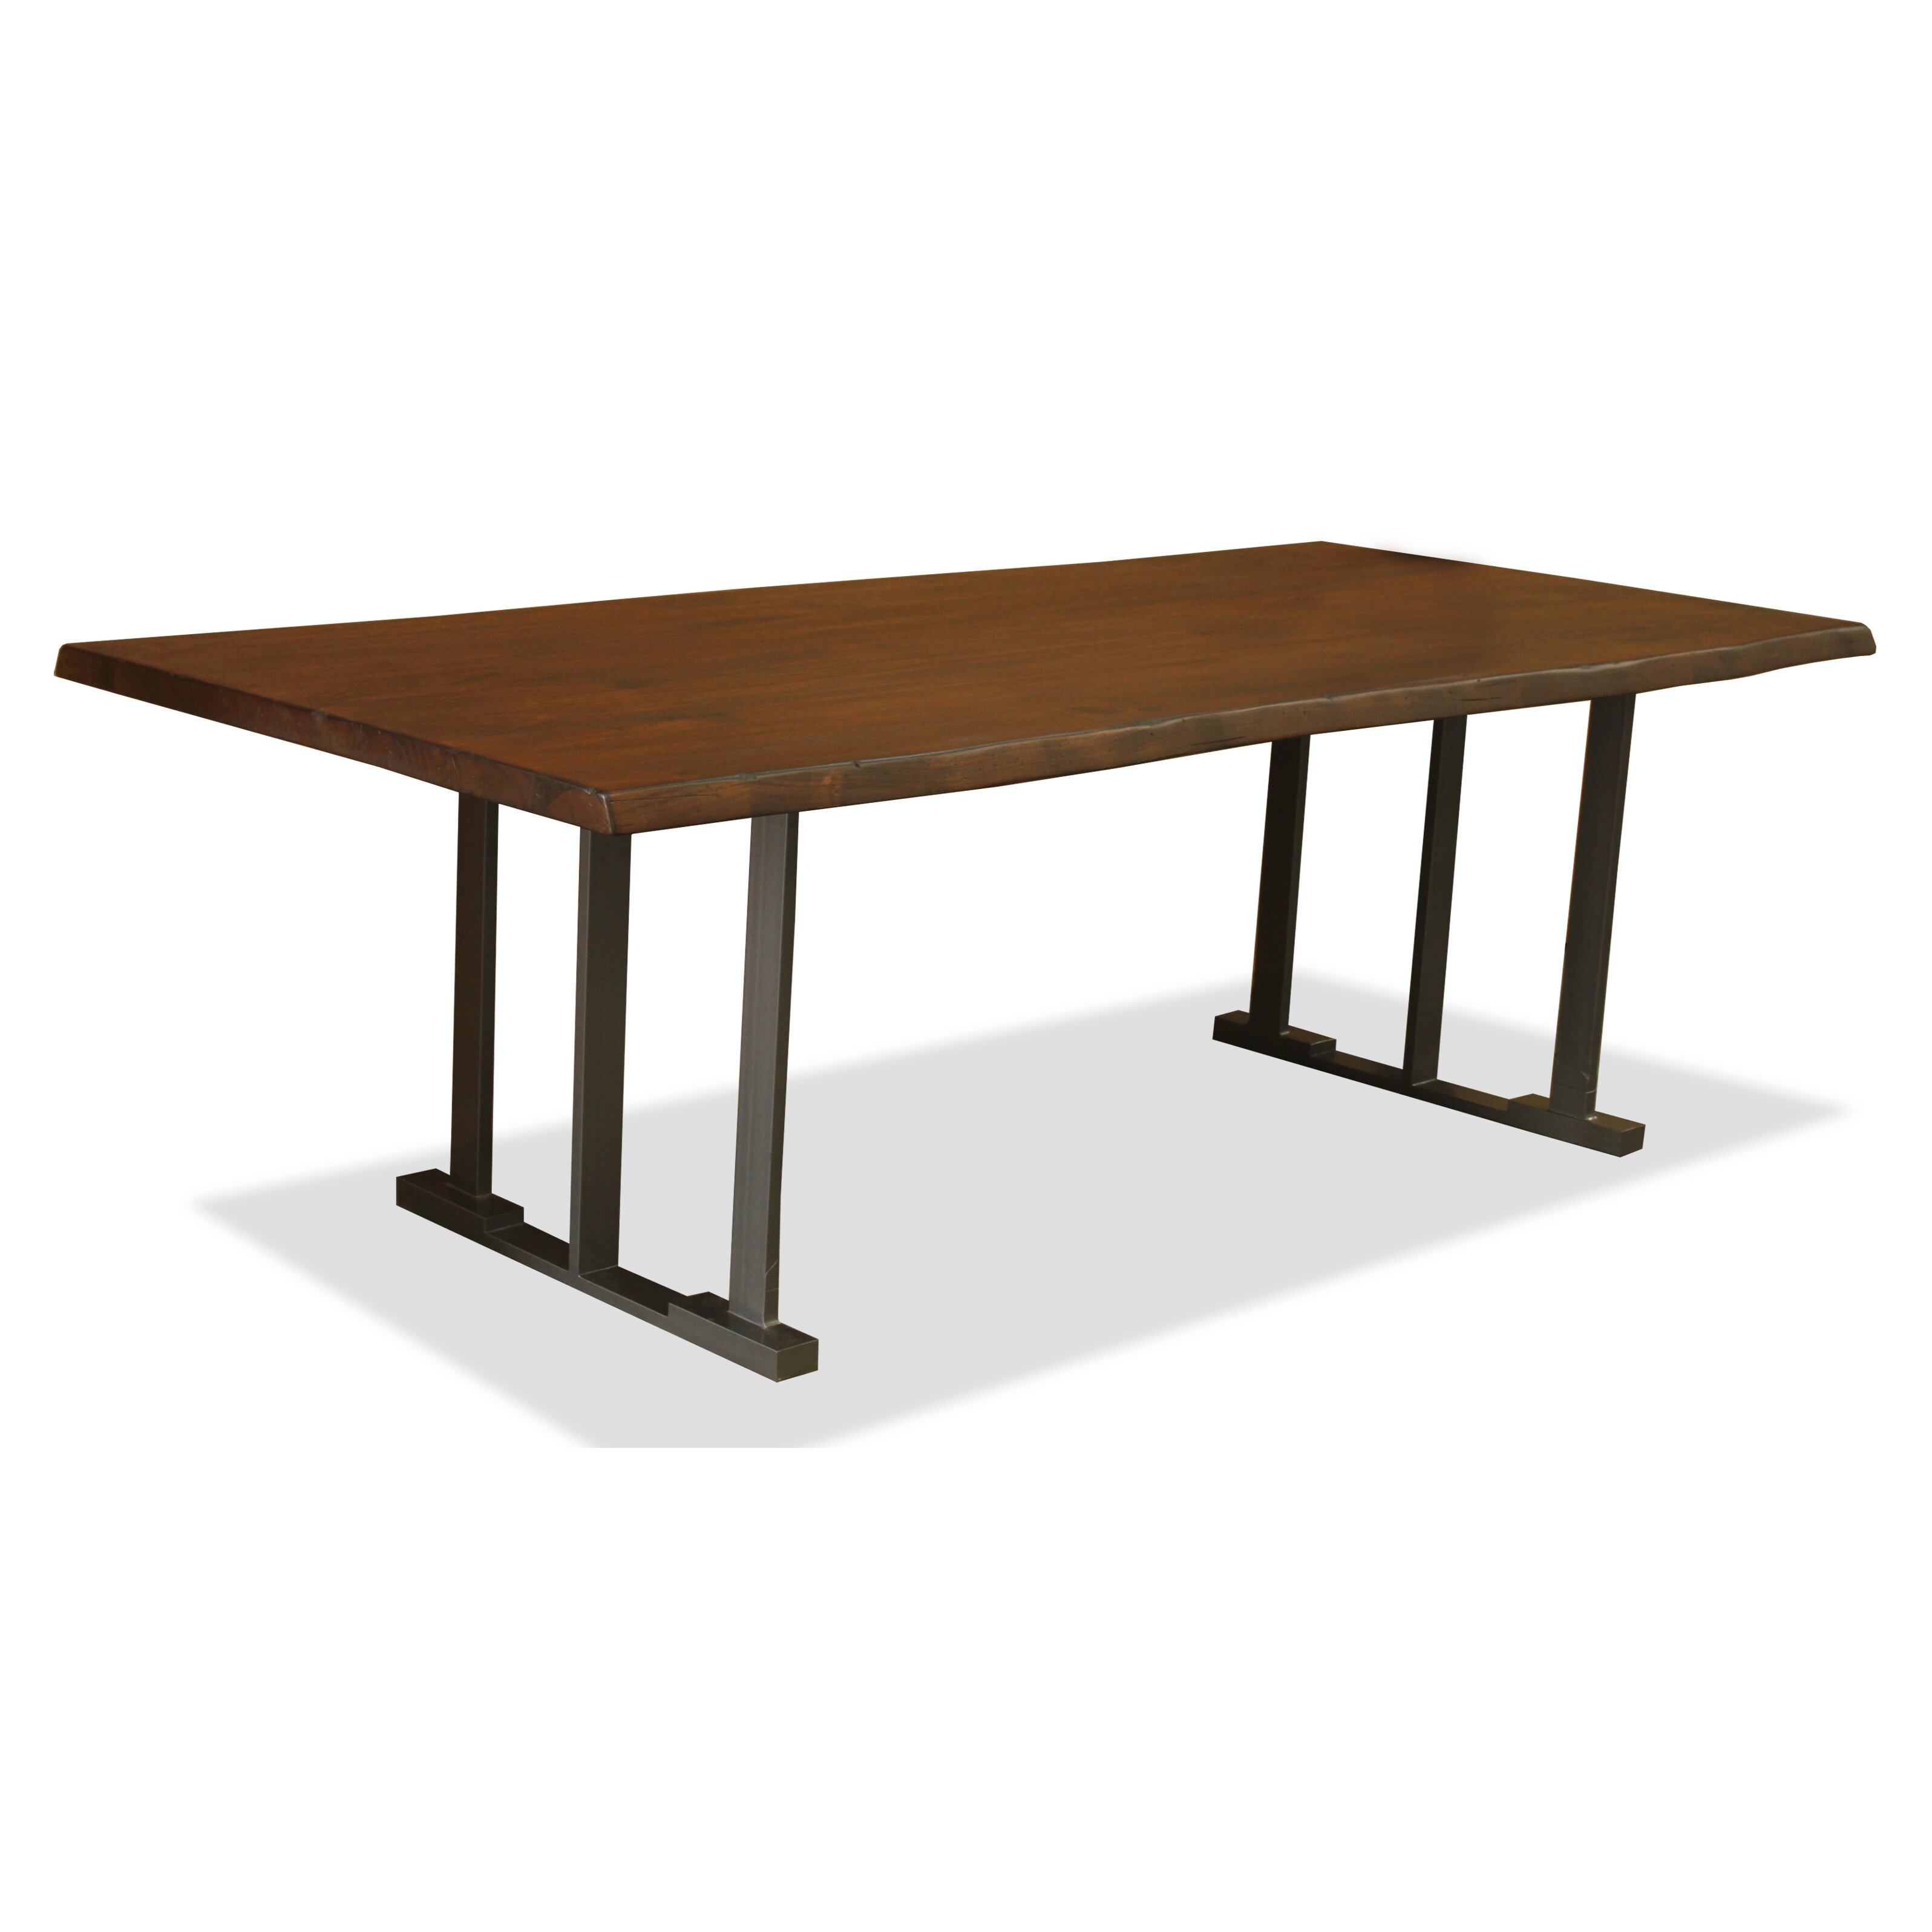 South Cone Home San Francisco Dining Table Wayfair : South Cone Home San Francisco Dining Table CATADN96 from www.wayfair.com size 3193 x 3193 jpeg 382kB